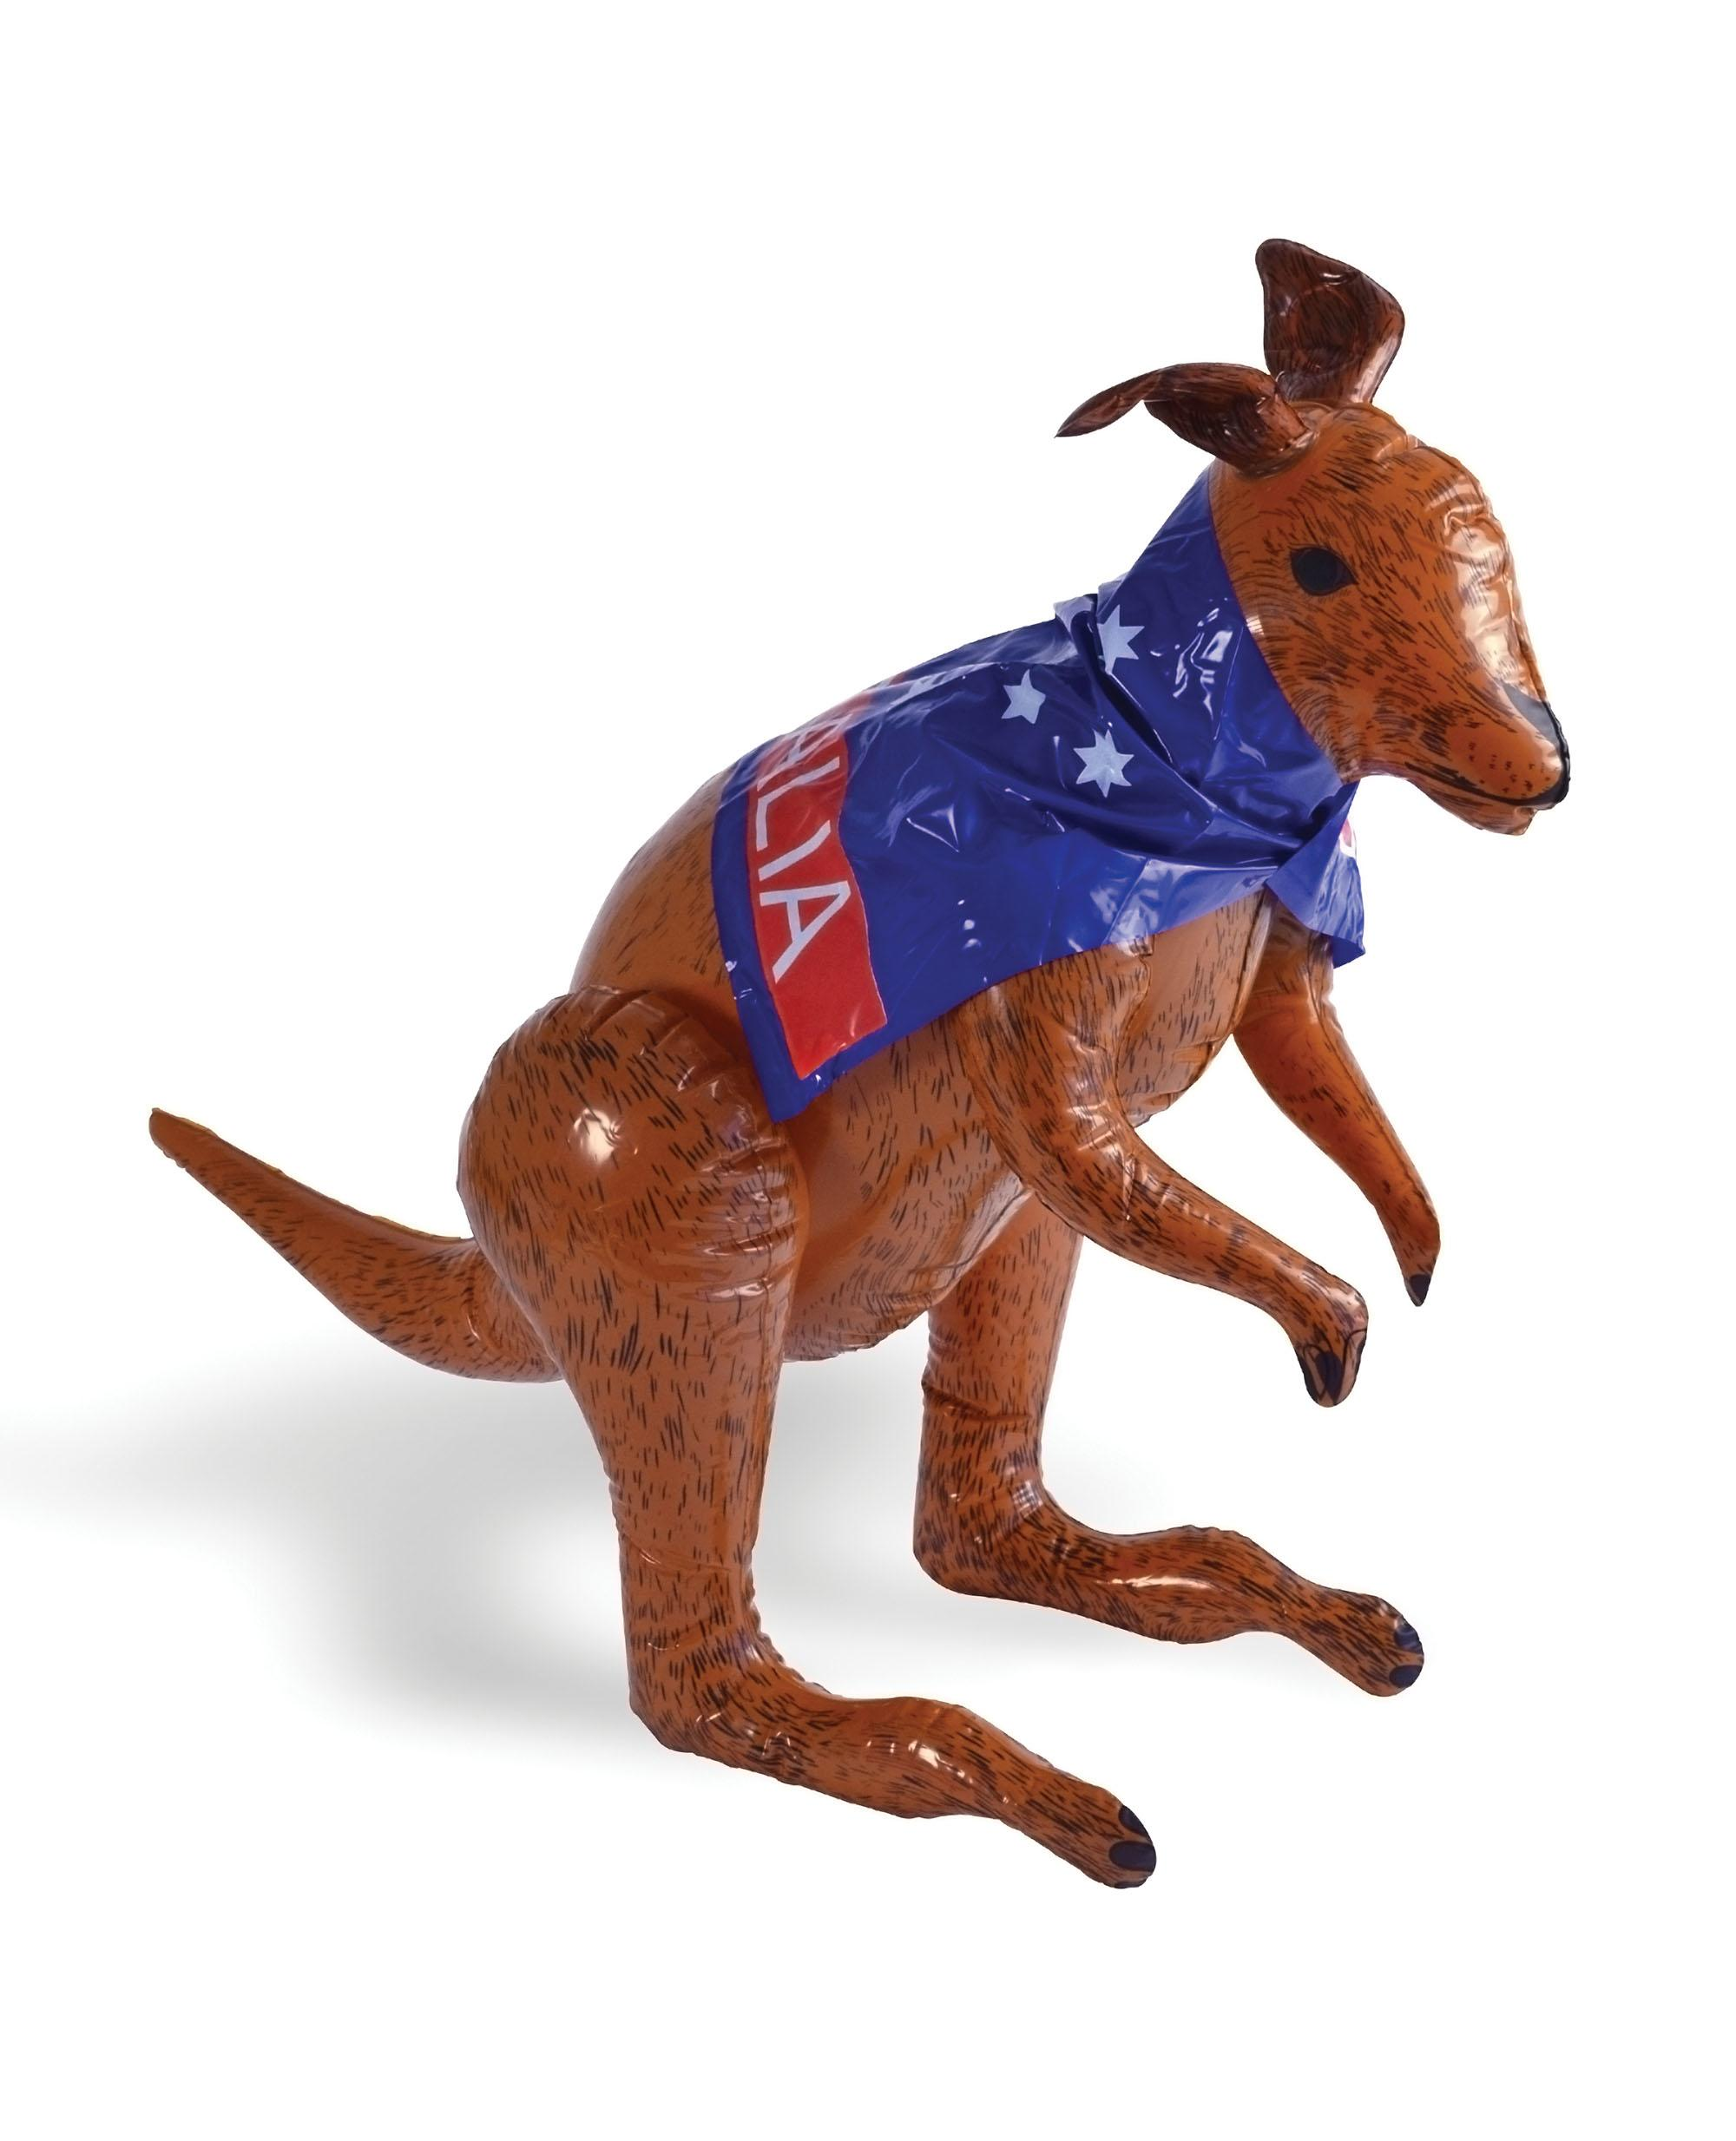 Inflatable Kangaroo with Cape